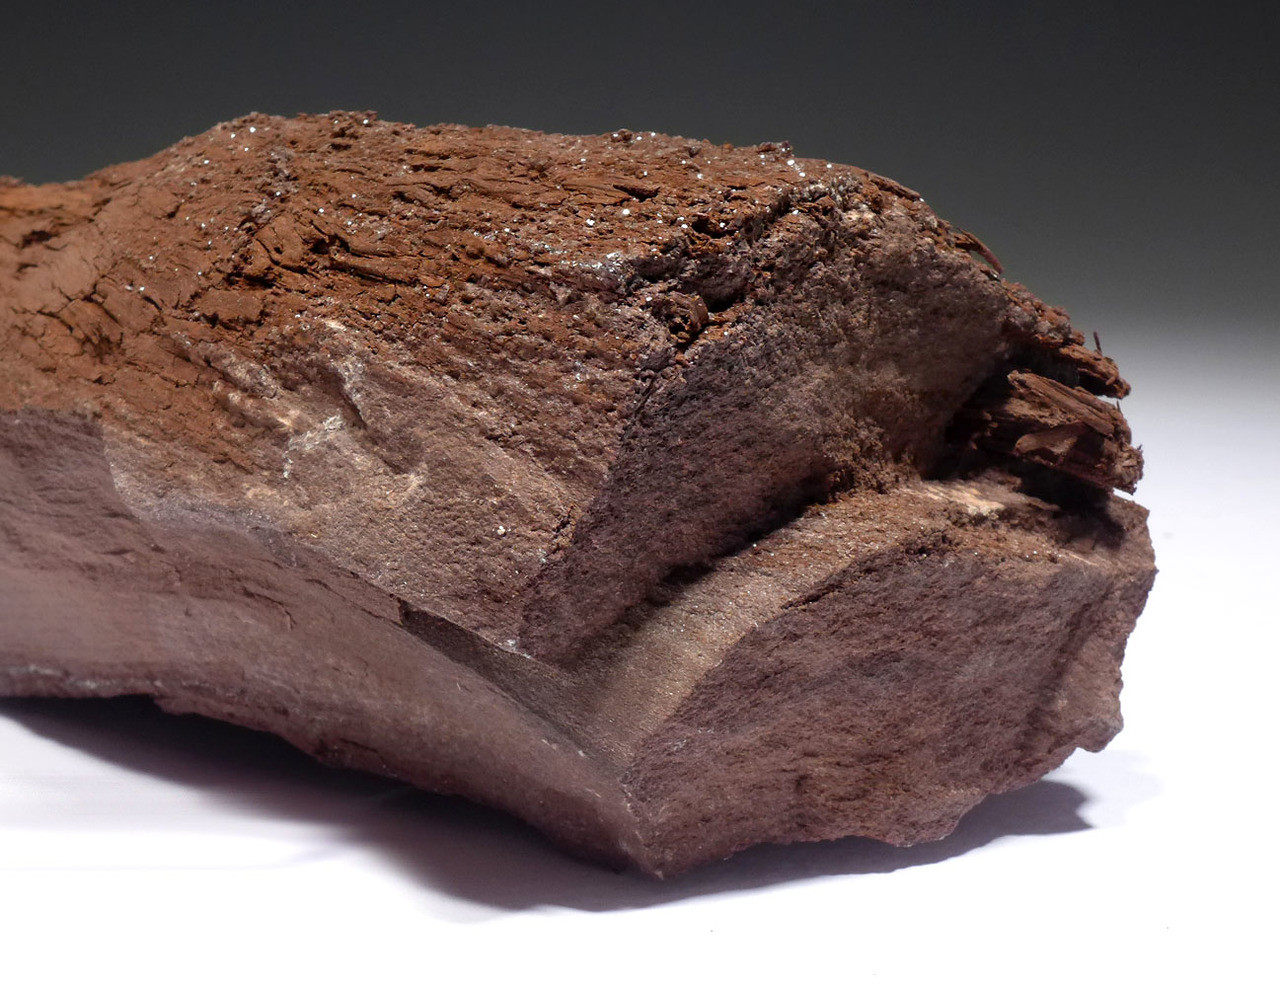 RARE TRIASSIC PERMINERALIZED LOG OF PETRIFIED WOOD WITH SPARKLING DRUSY CRYSTALS FROM GERMAN COAL DEPOSIT *PL174